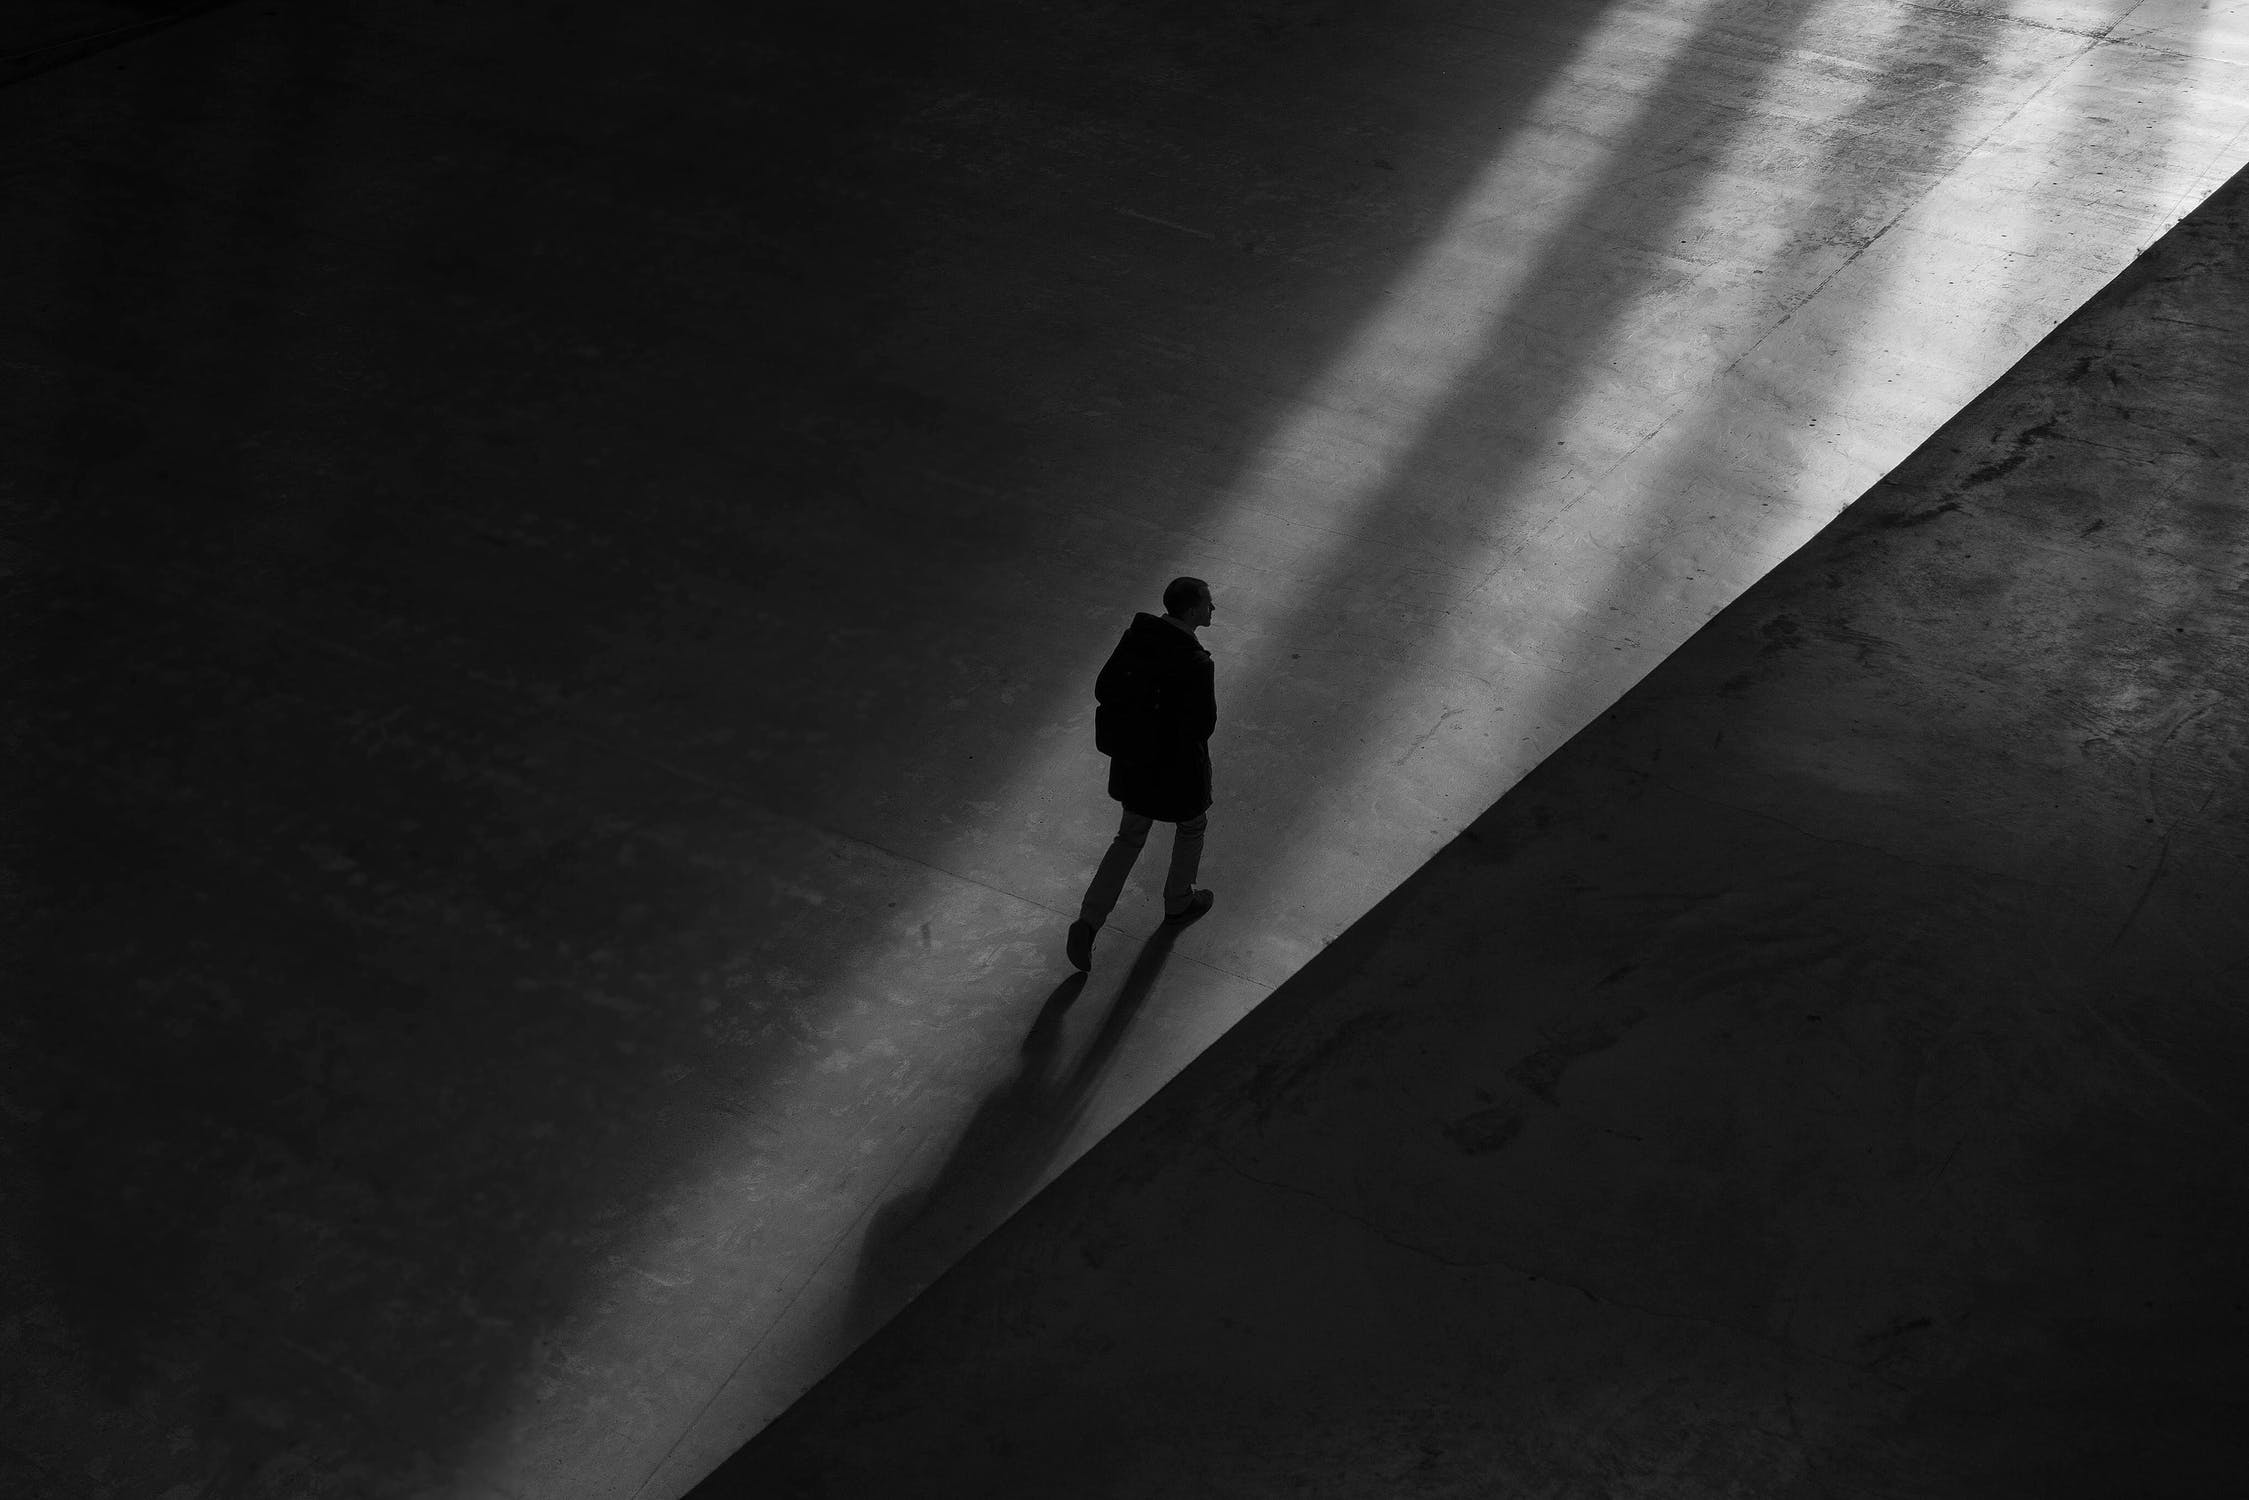 Man walking through light shaft